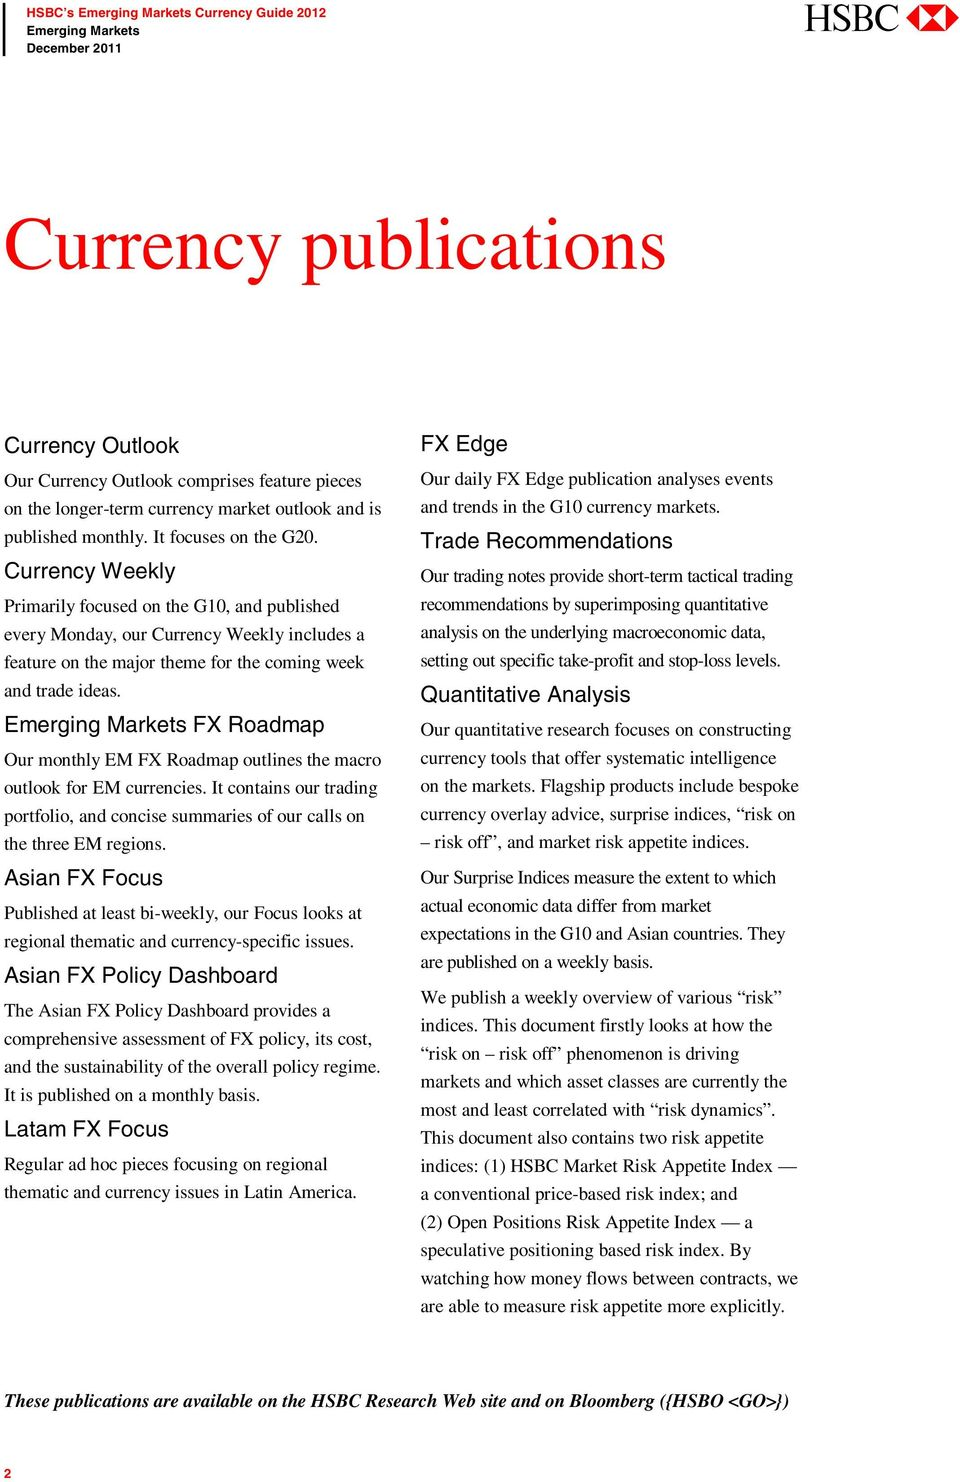 FX Roadmap Our monthly EM FX Roadmap outlines the macro outlook for EM currencies. It contains our trading portfolio, and concise summaries of our calls on the three EM regions.